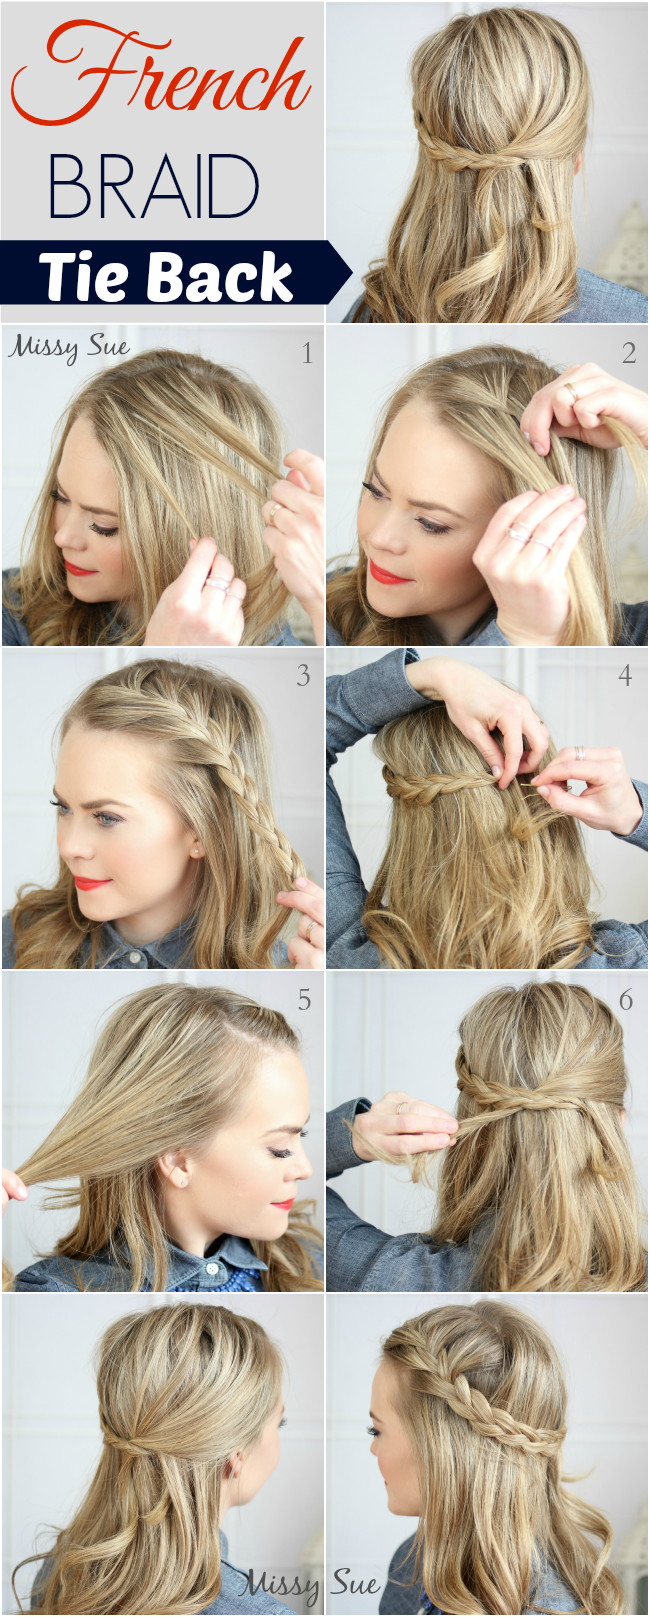 Frisuren frisuren pinterest french braid hair style and hair